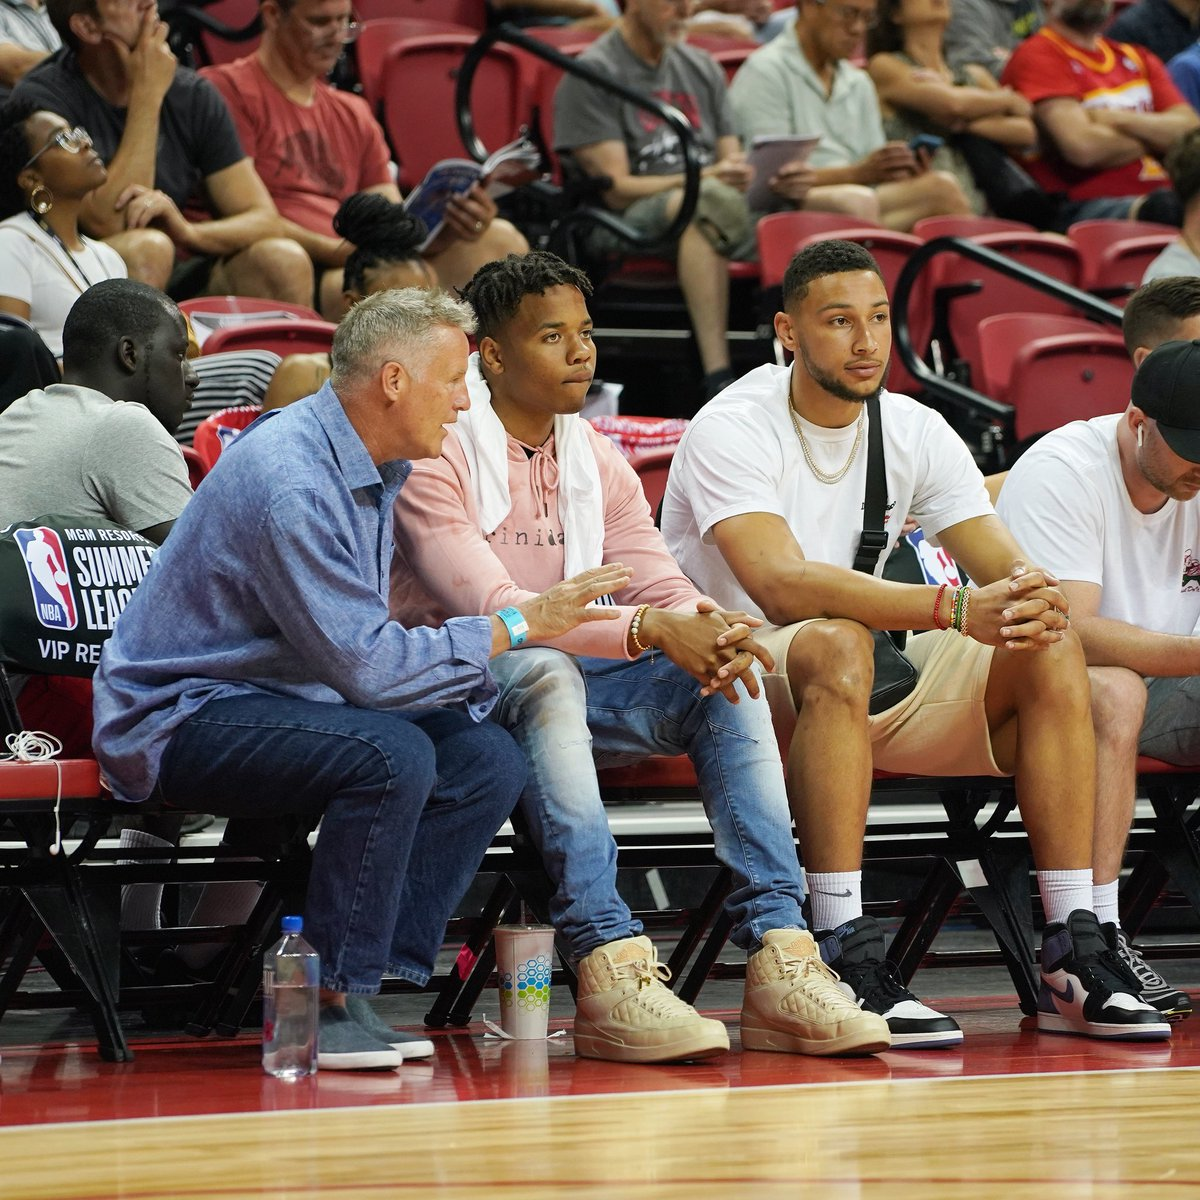 Coach, @MarkelleF and @bensimmons25 sittin' courtside for today's Summer League action! #Summer76